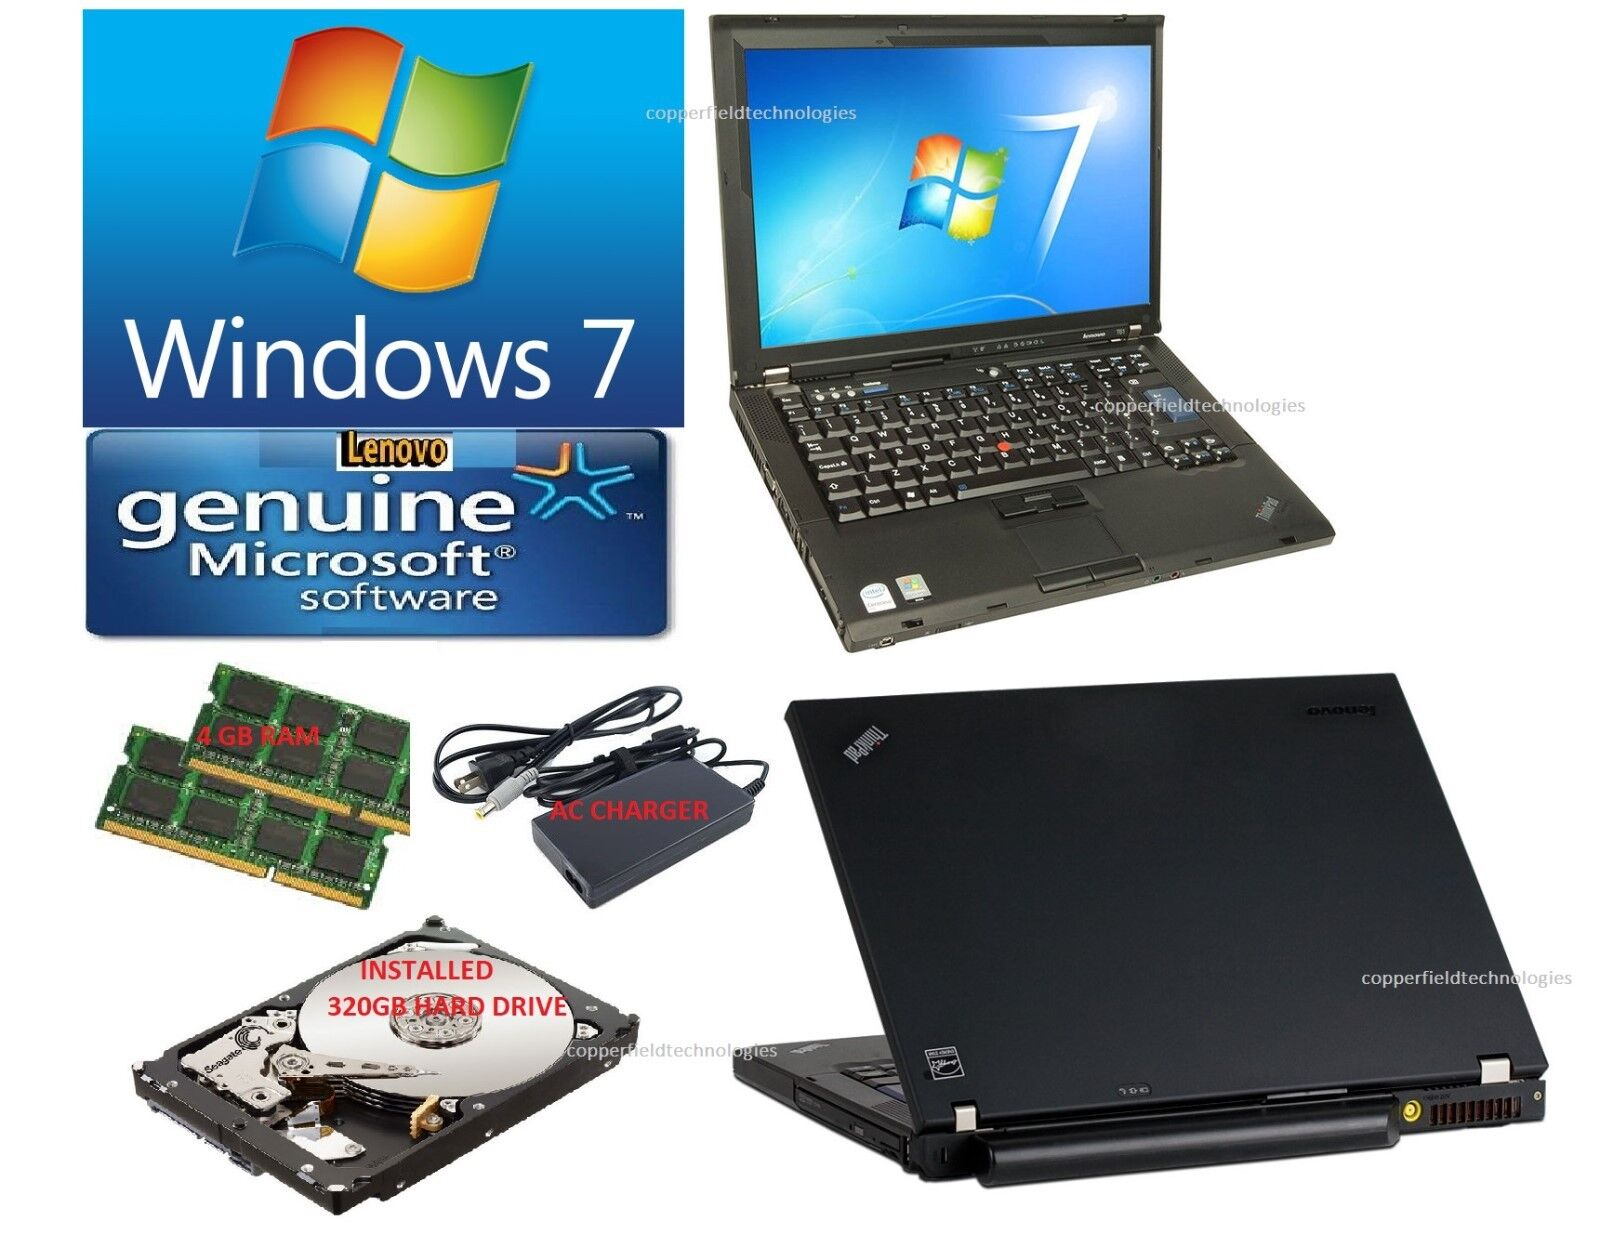 LENOVO Laptop/Notebook WINDOWS 7 WIFI 248GB HDD CDRW DVD, Office 698 complete